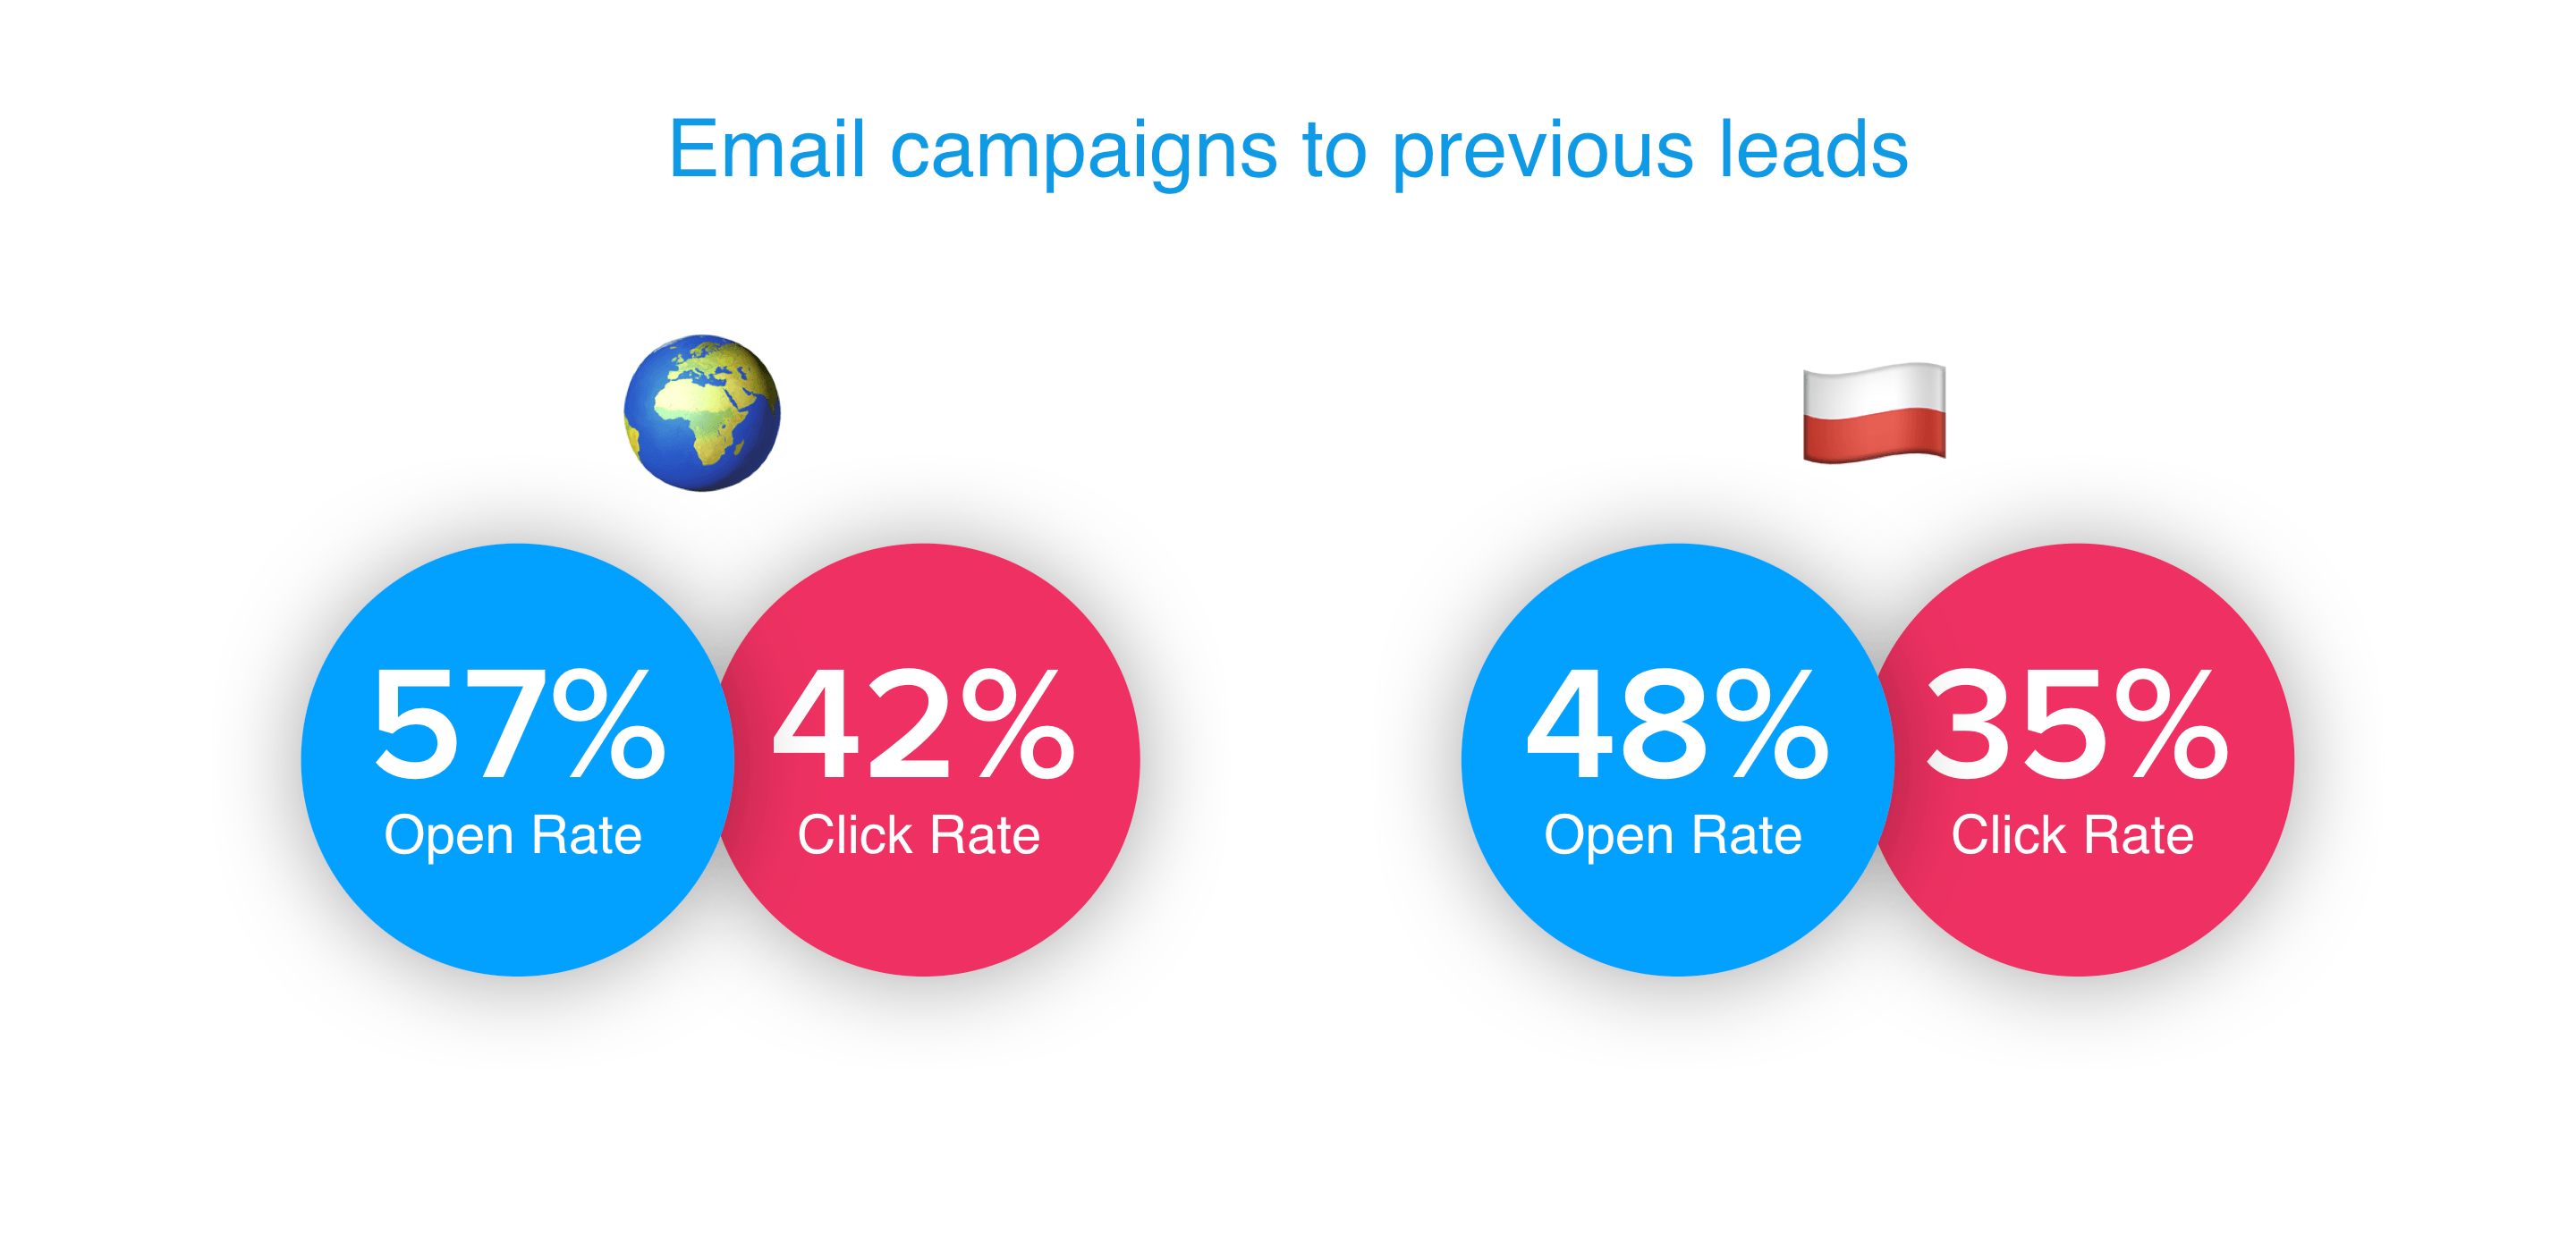 email campaigns to previous leads summary